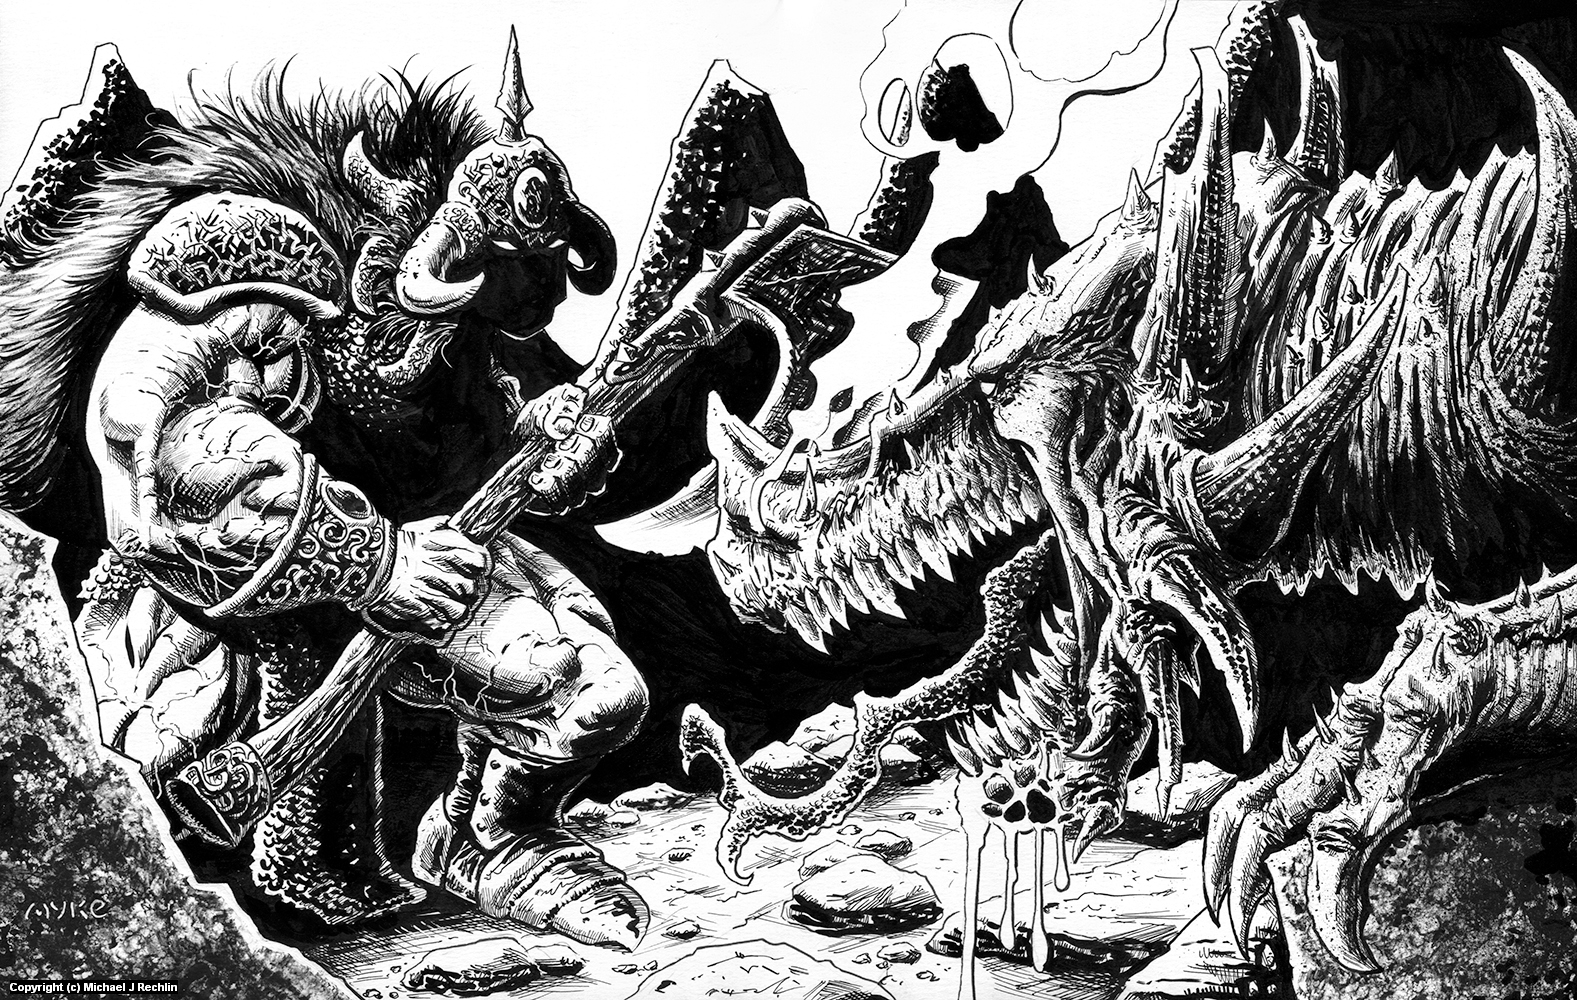 Duel with Death Artwork by Michael Rechlin